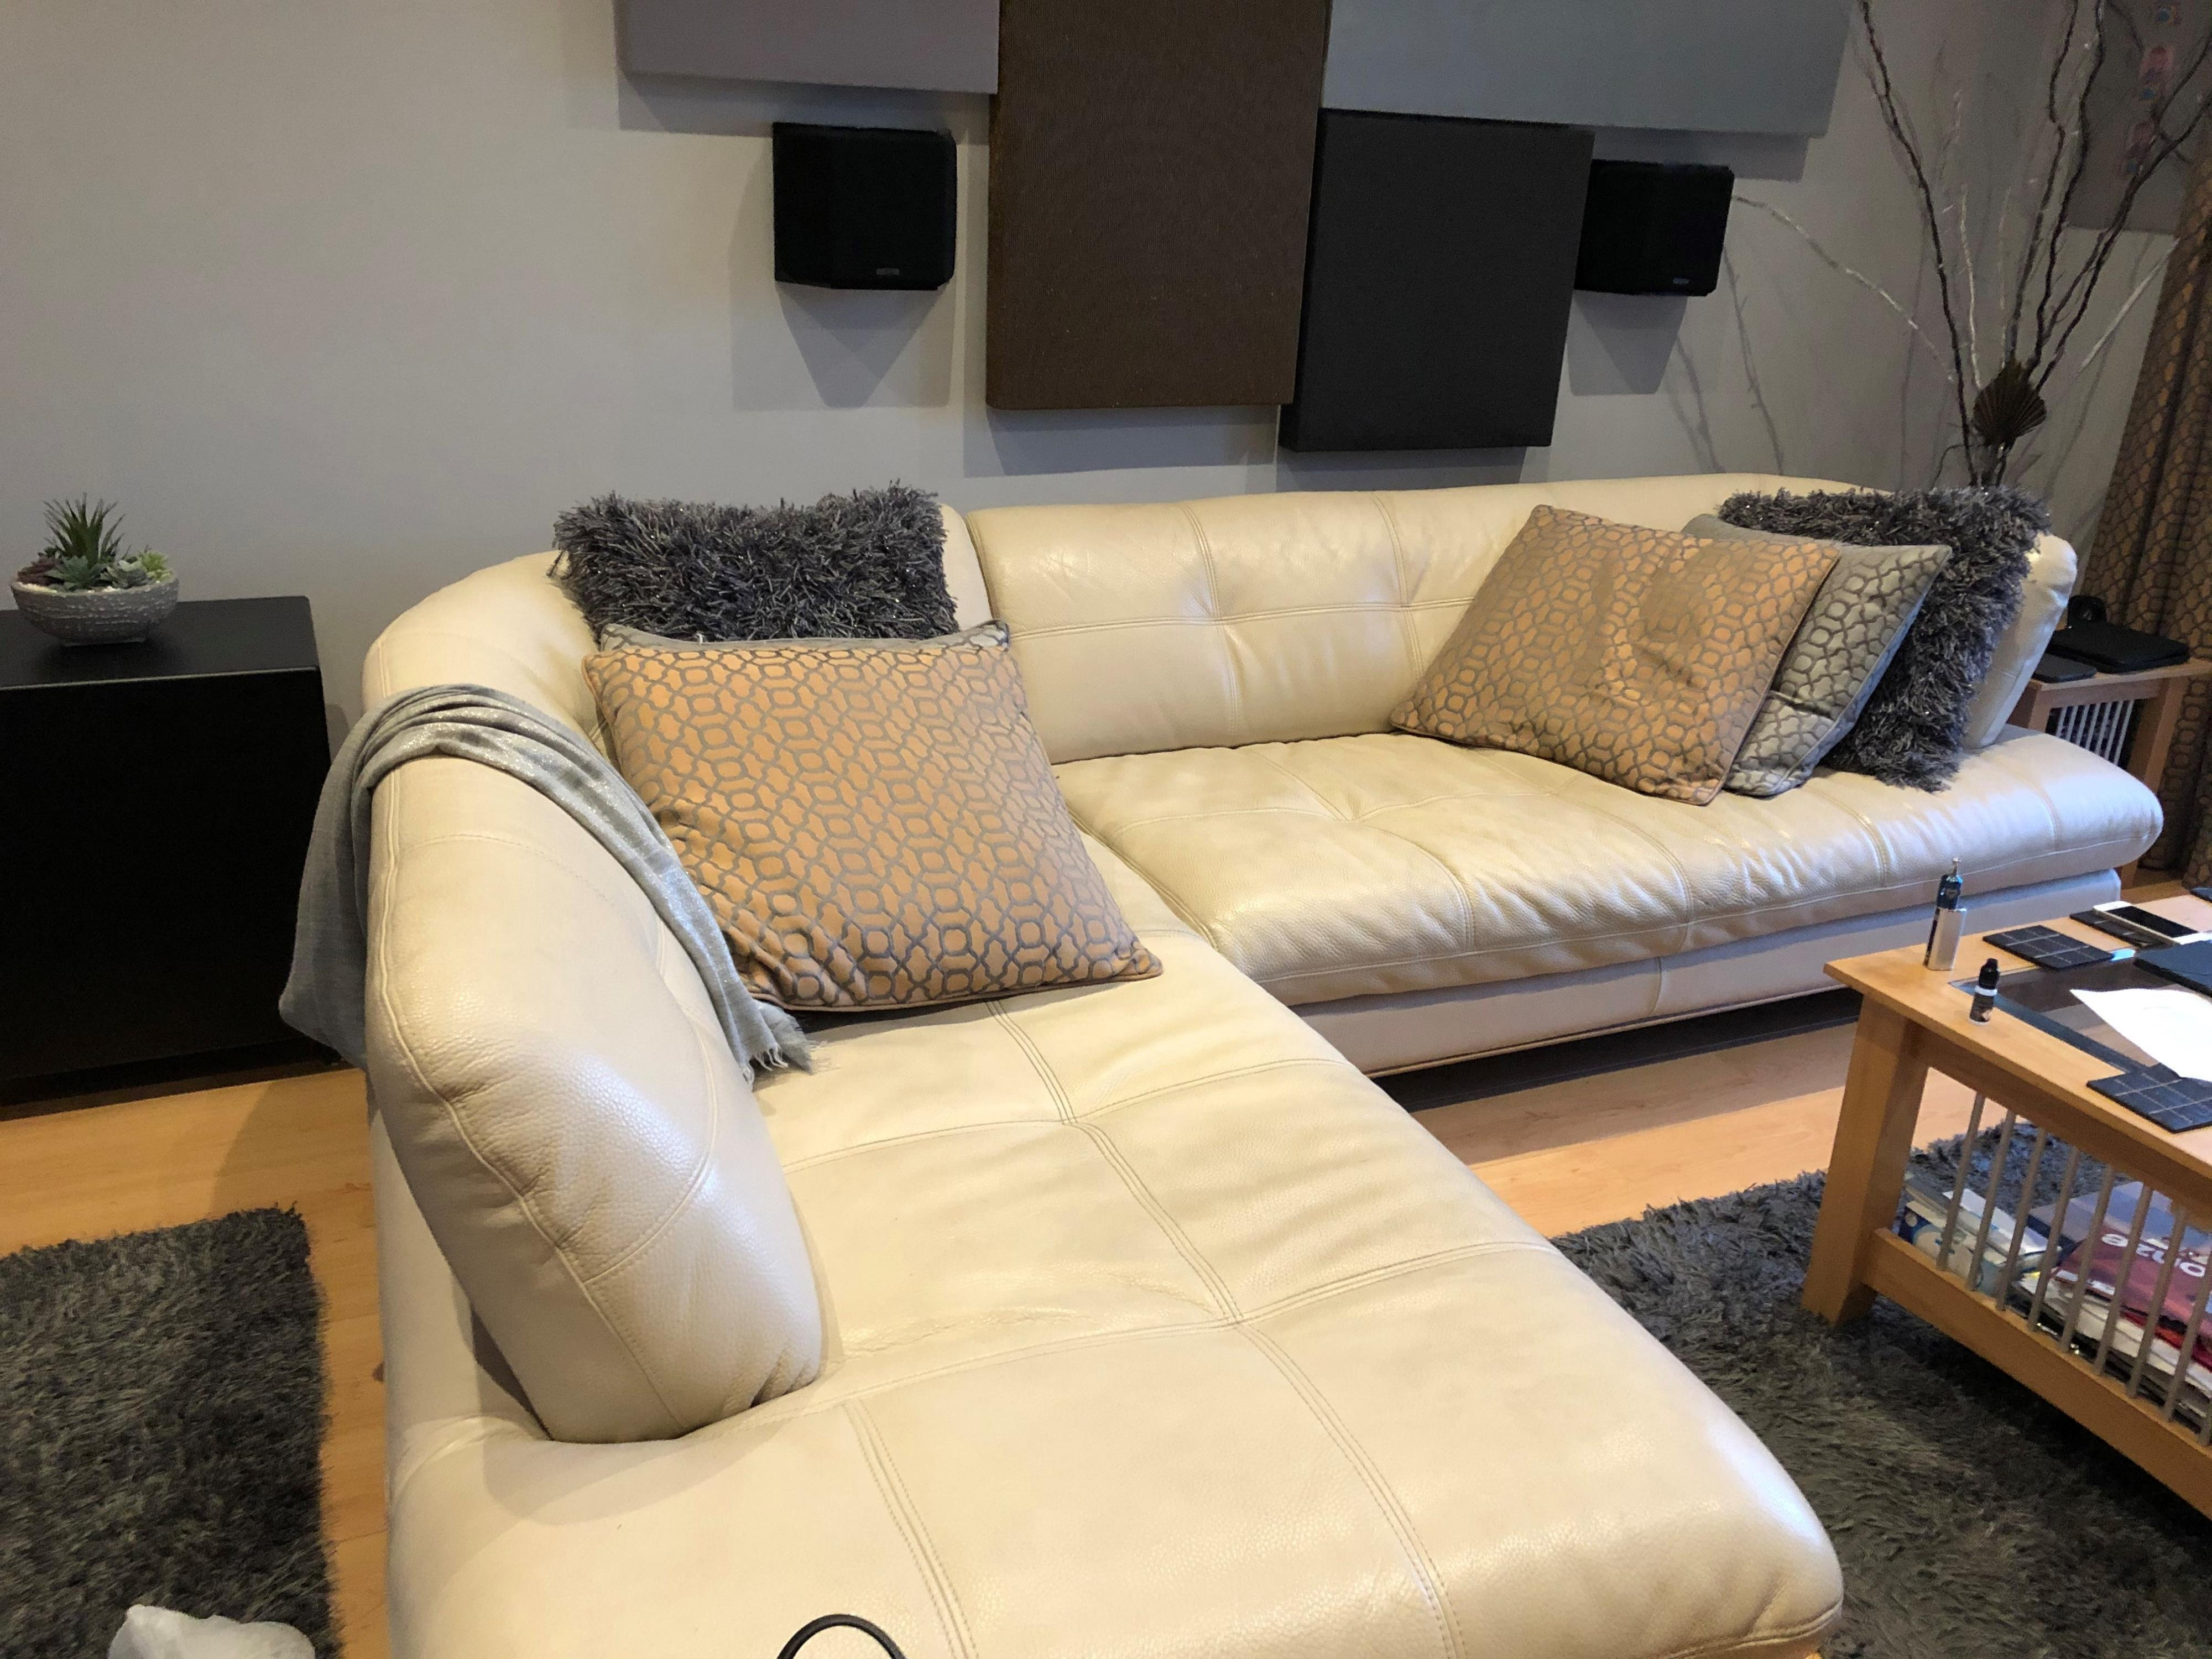 Click image for larger version  Name:Sofa Pic.jpg Views:34 Size:1.03 MB ID:2672780